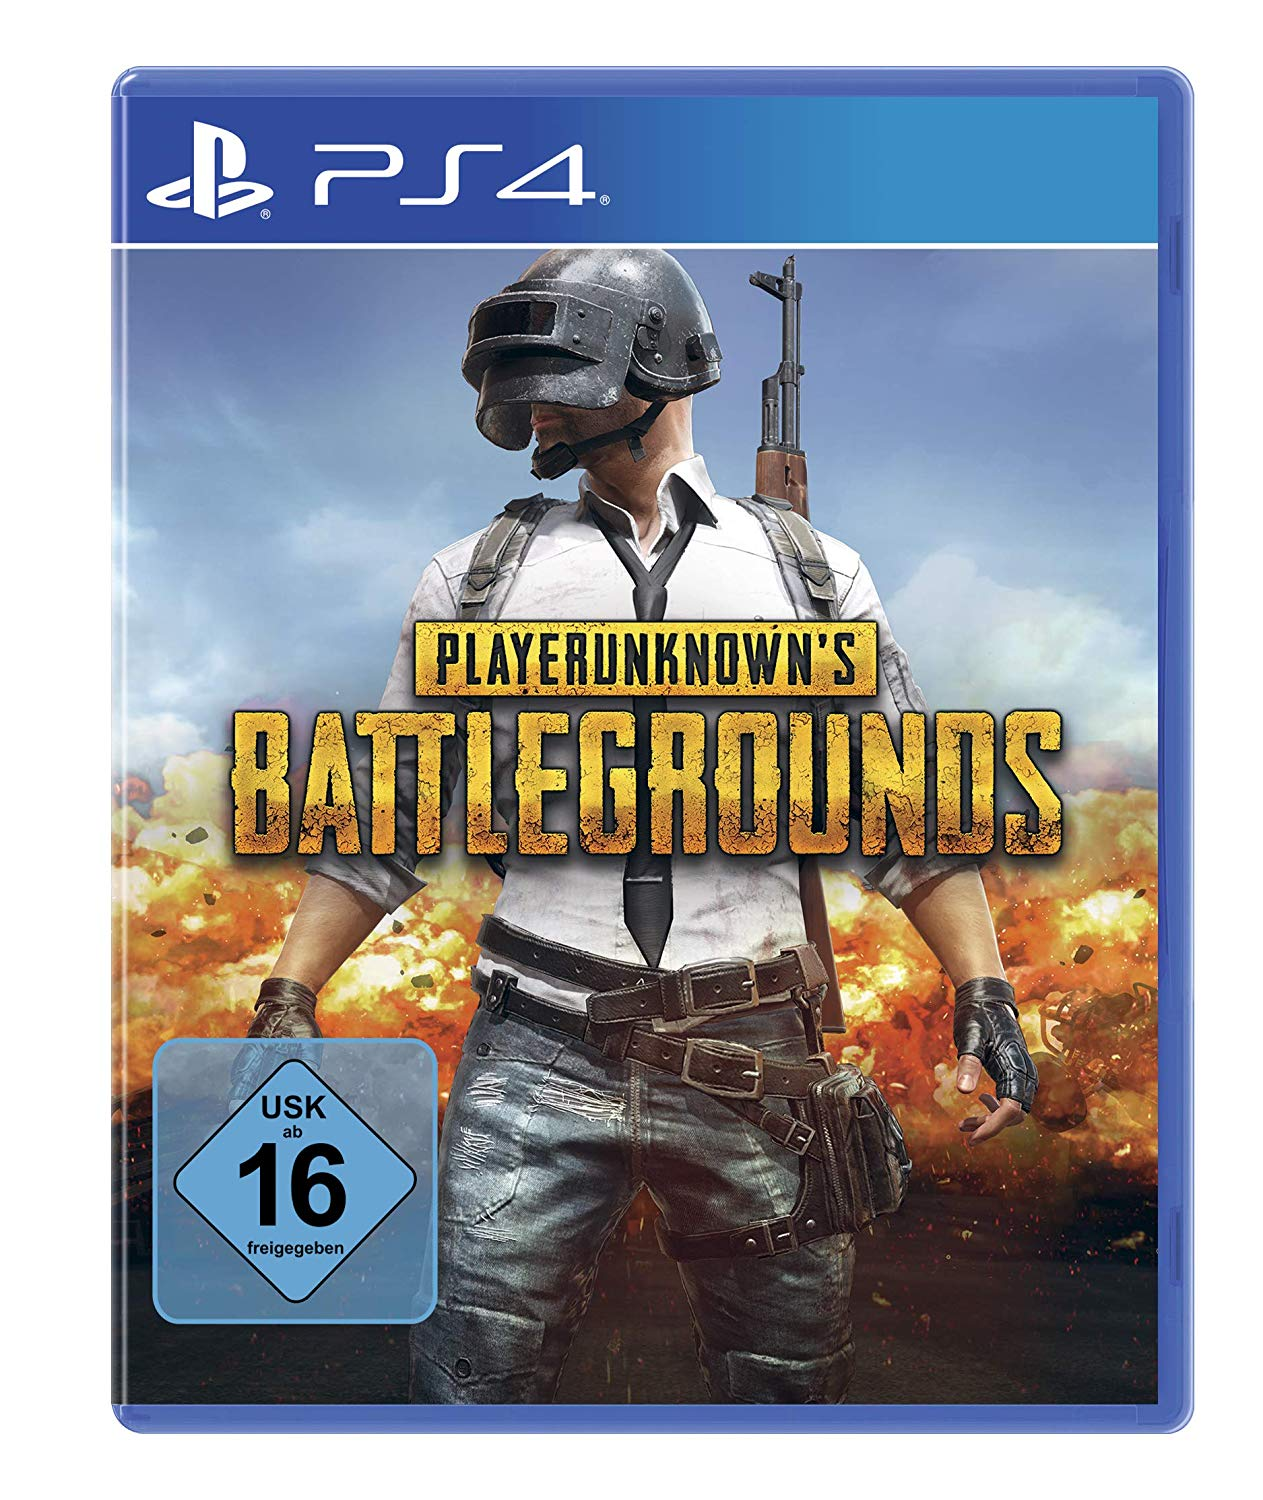 PlayerUnknown´s Battlegrounds (PUBG) PS4